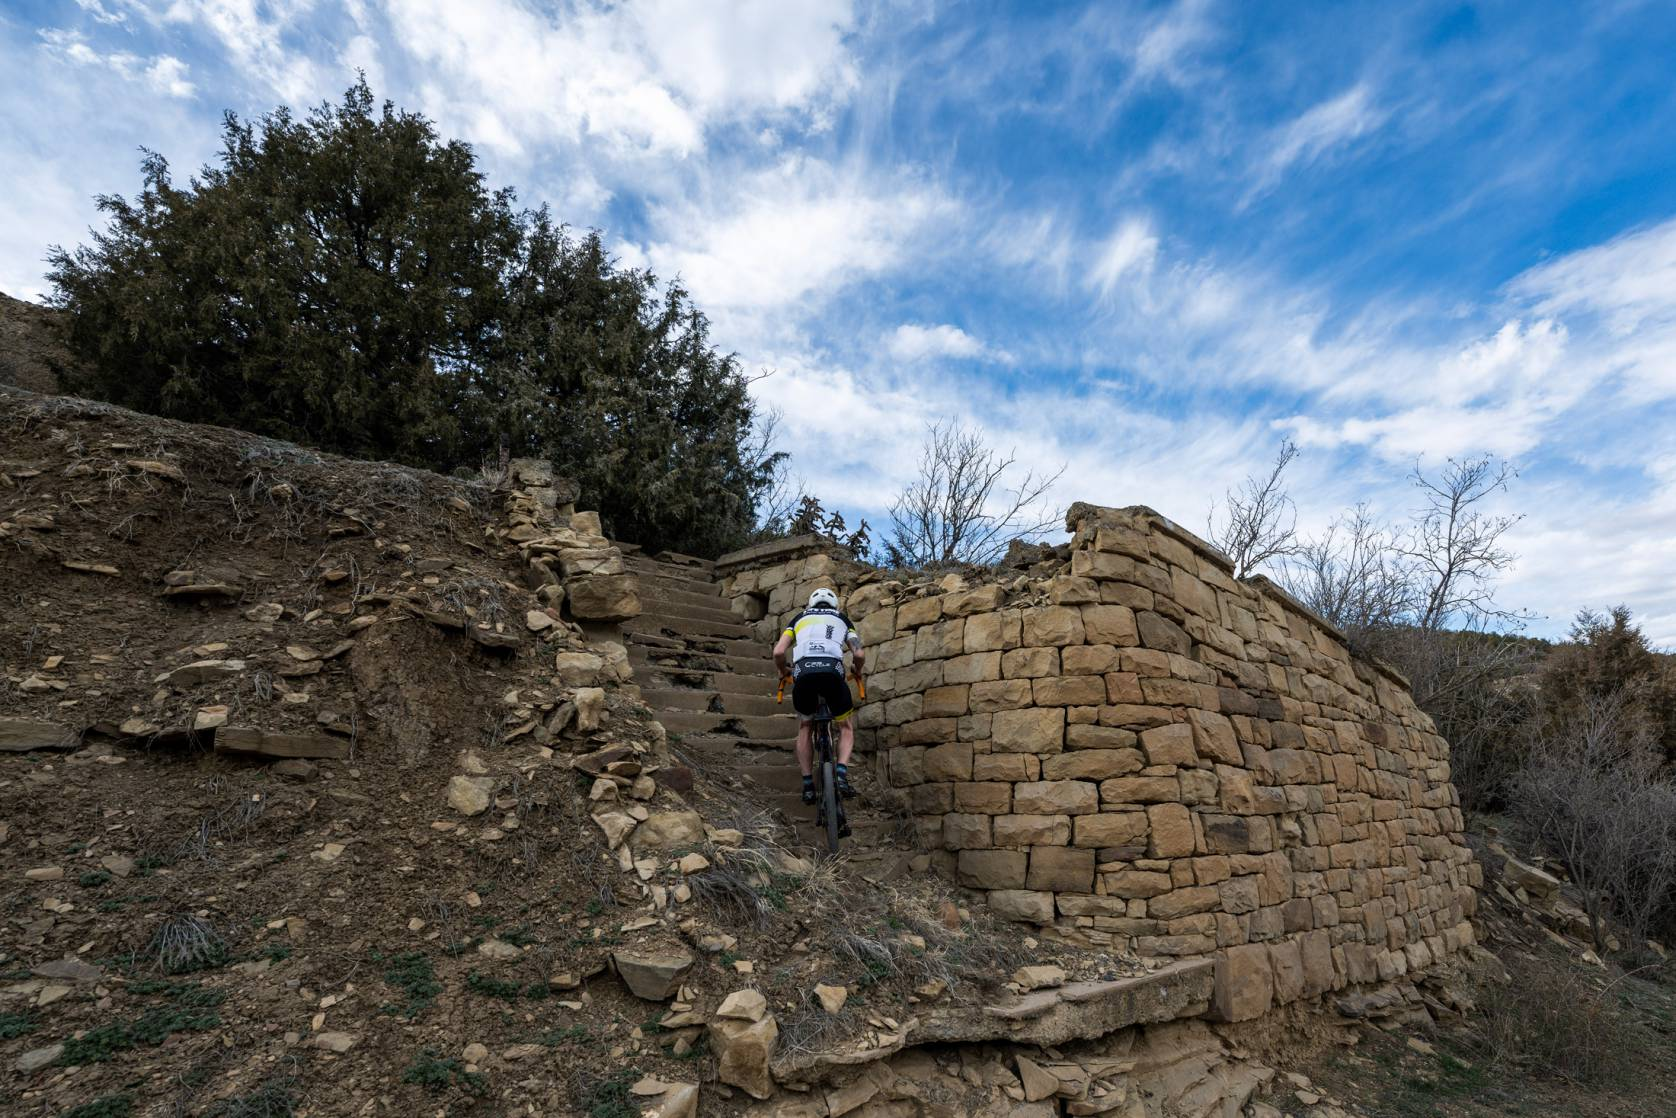 Cyclist riding up stair ruins in Trinidad, CO